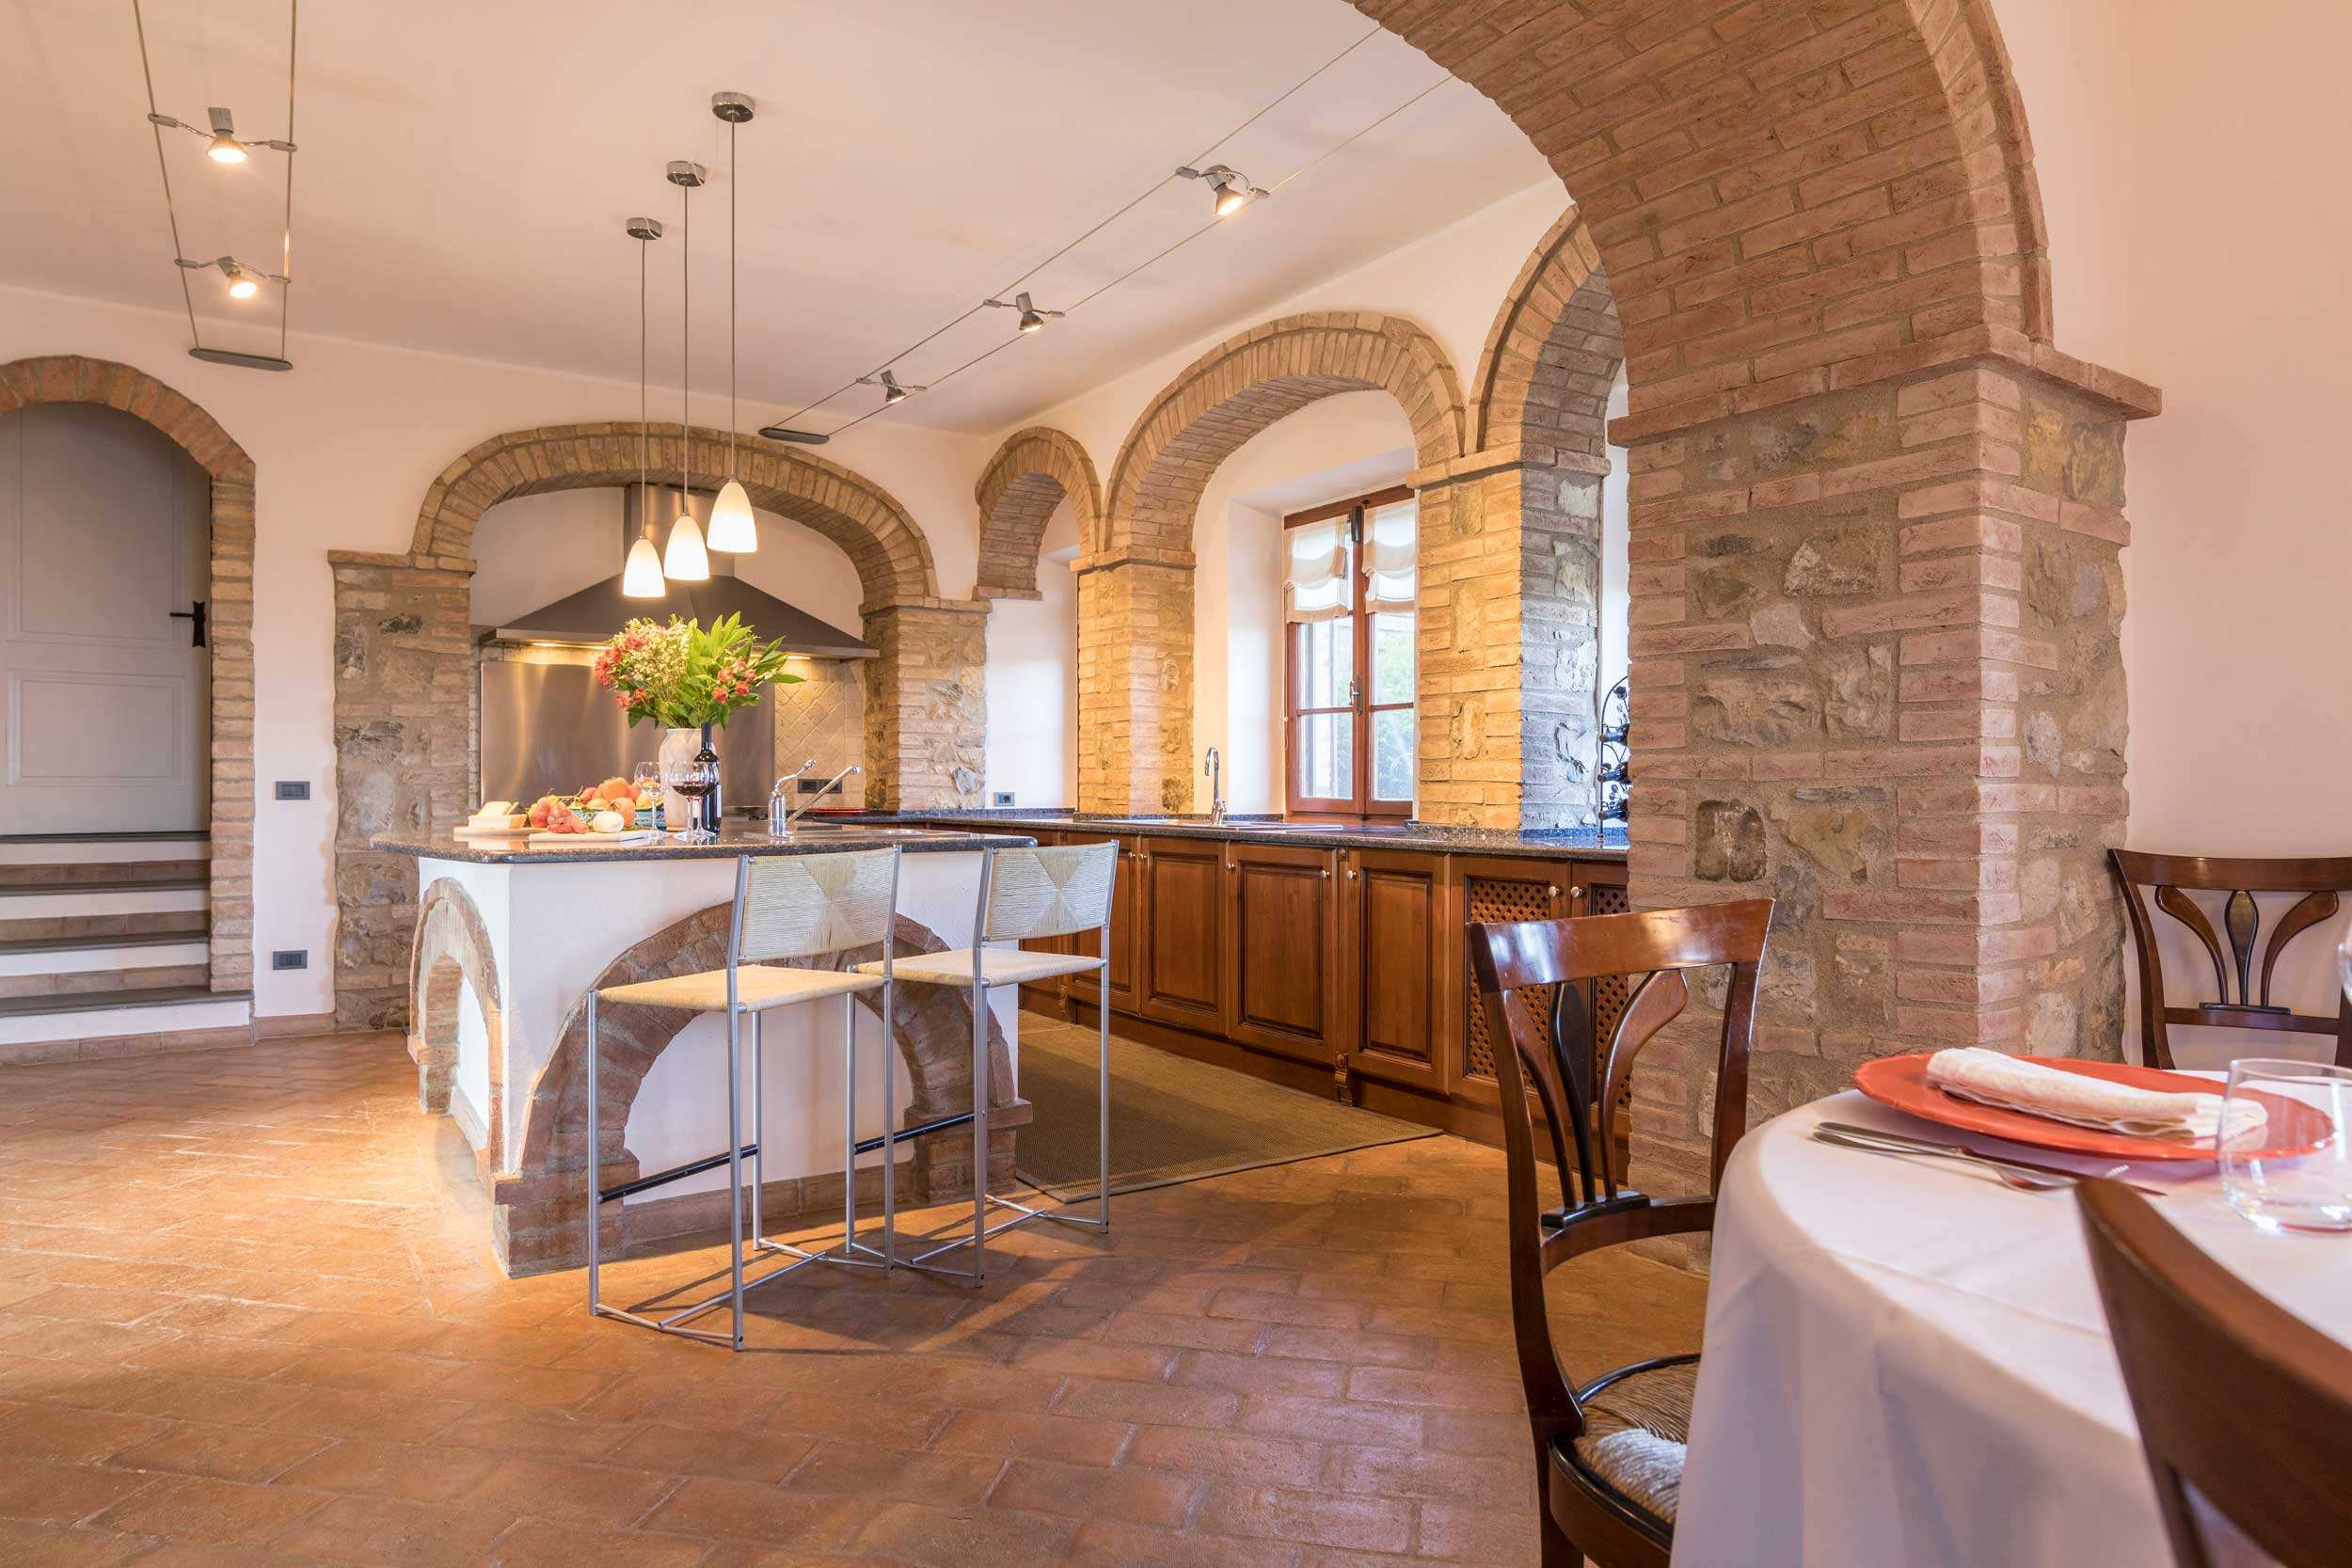 Cuvée's Luxury Tuscany Vacation Rental in with Staff and Pool